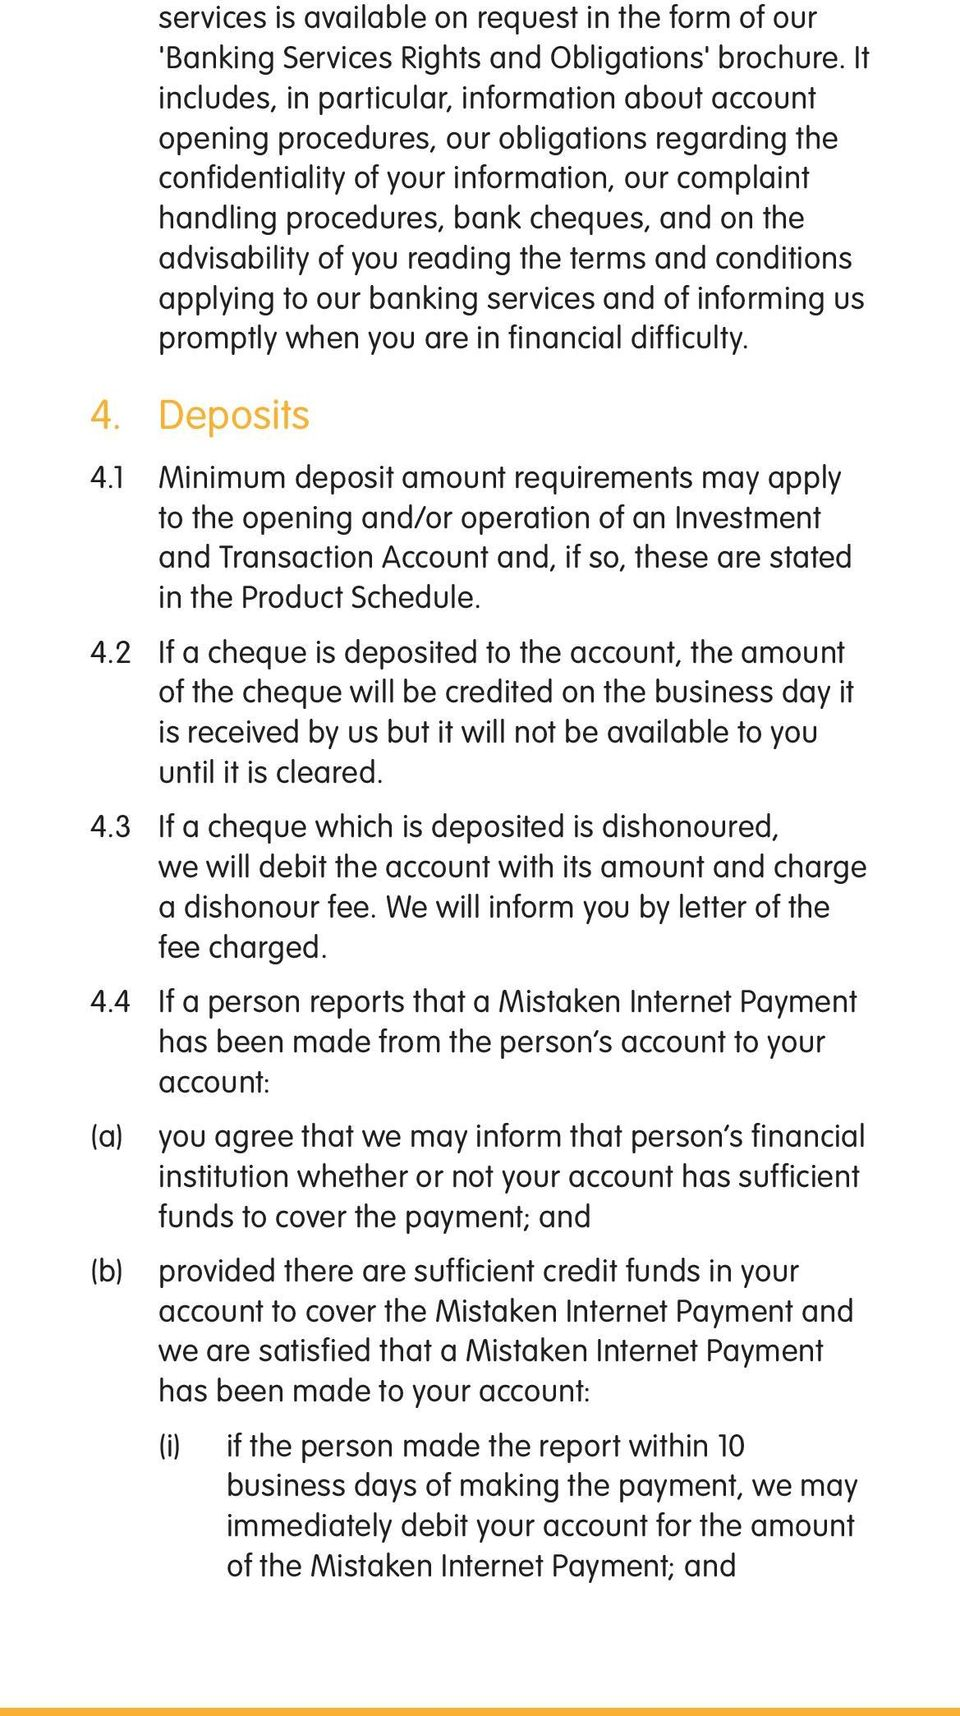 the advisability of you reading the terms and conditions applying to our banking services and of informing us promptly when you are in financial difficulty. 4. Deposits 4.